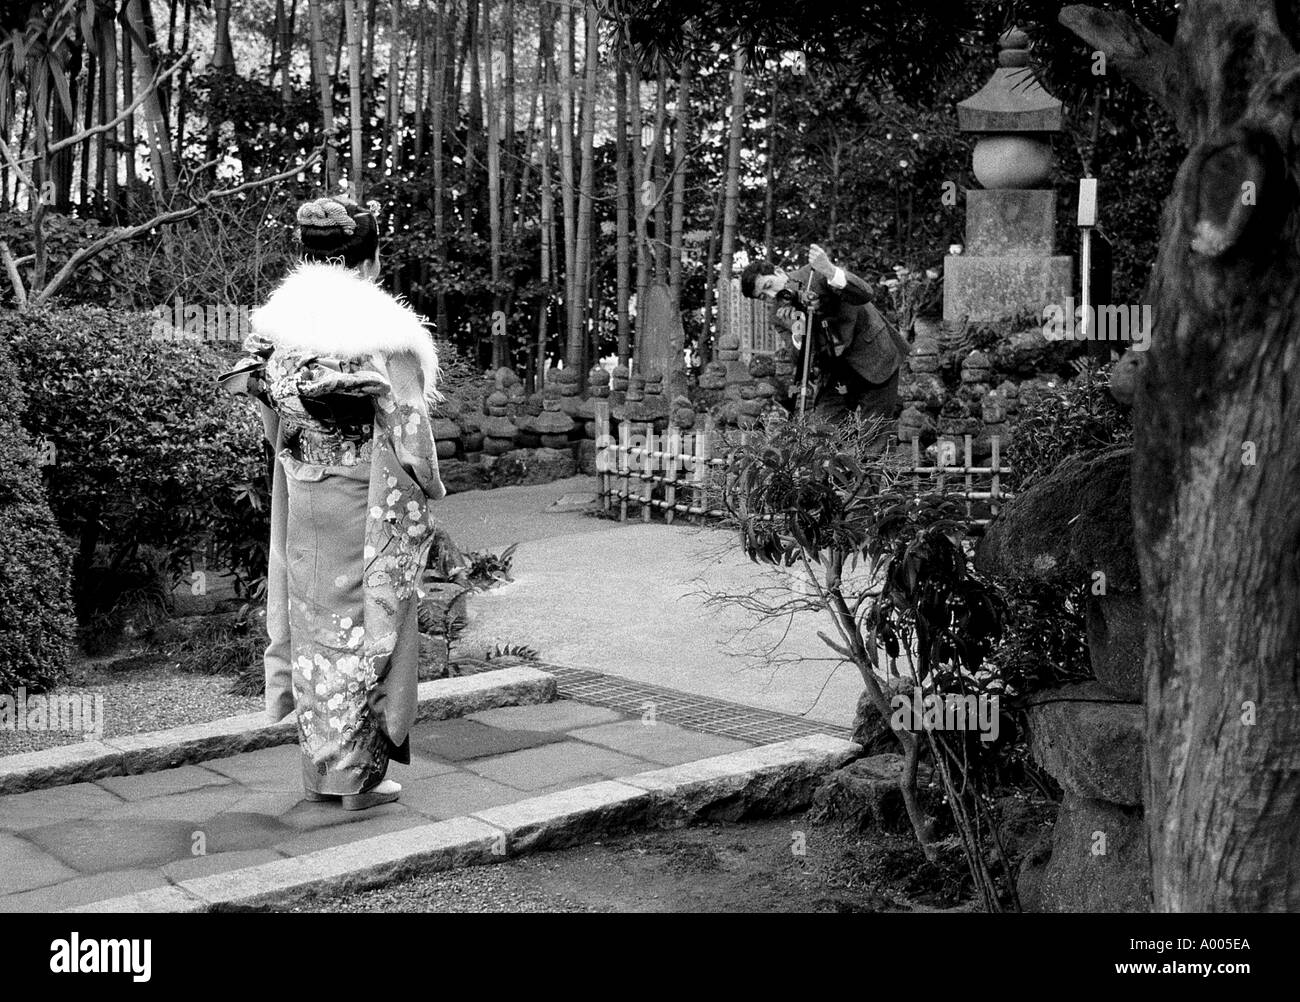 Girl celebrating adult day by being photographed at Temple in Kamakura Japan fabrik studios - Stock Image